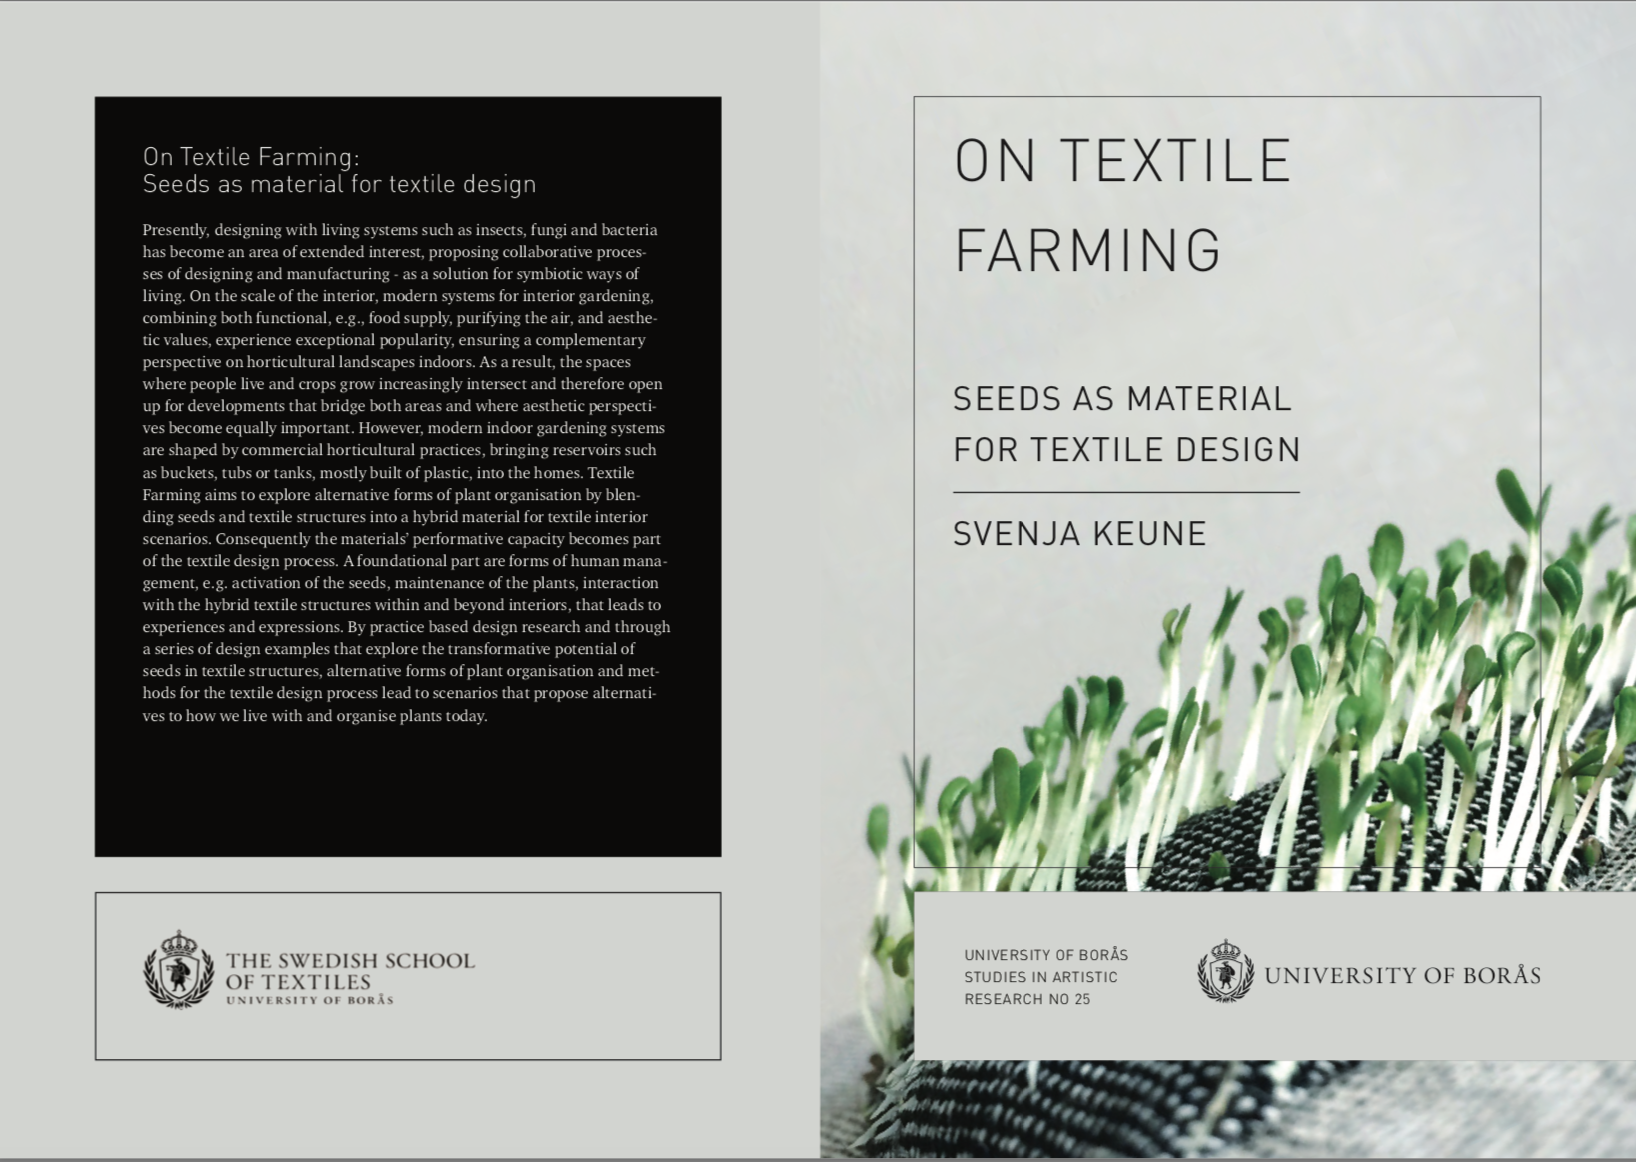 On Textile Farming: Seeds as Material for Textile Design_Svenja Keune